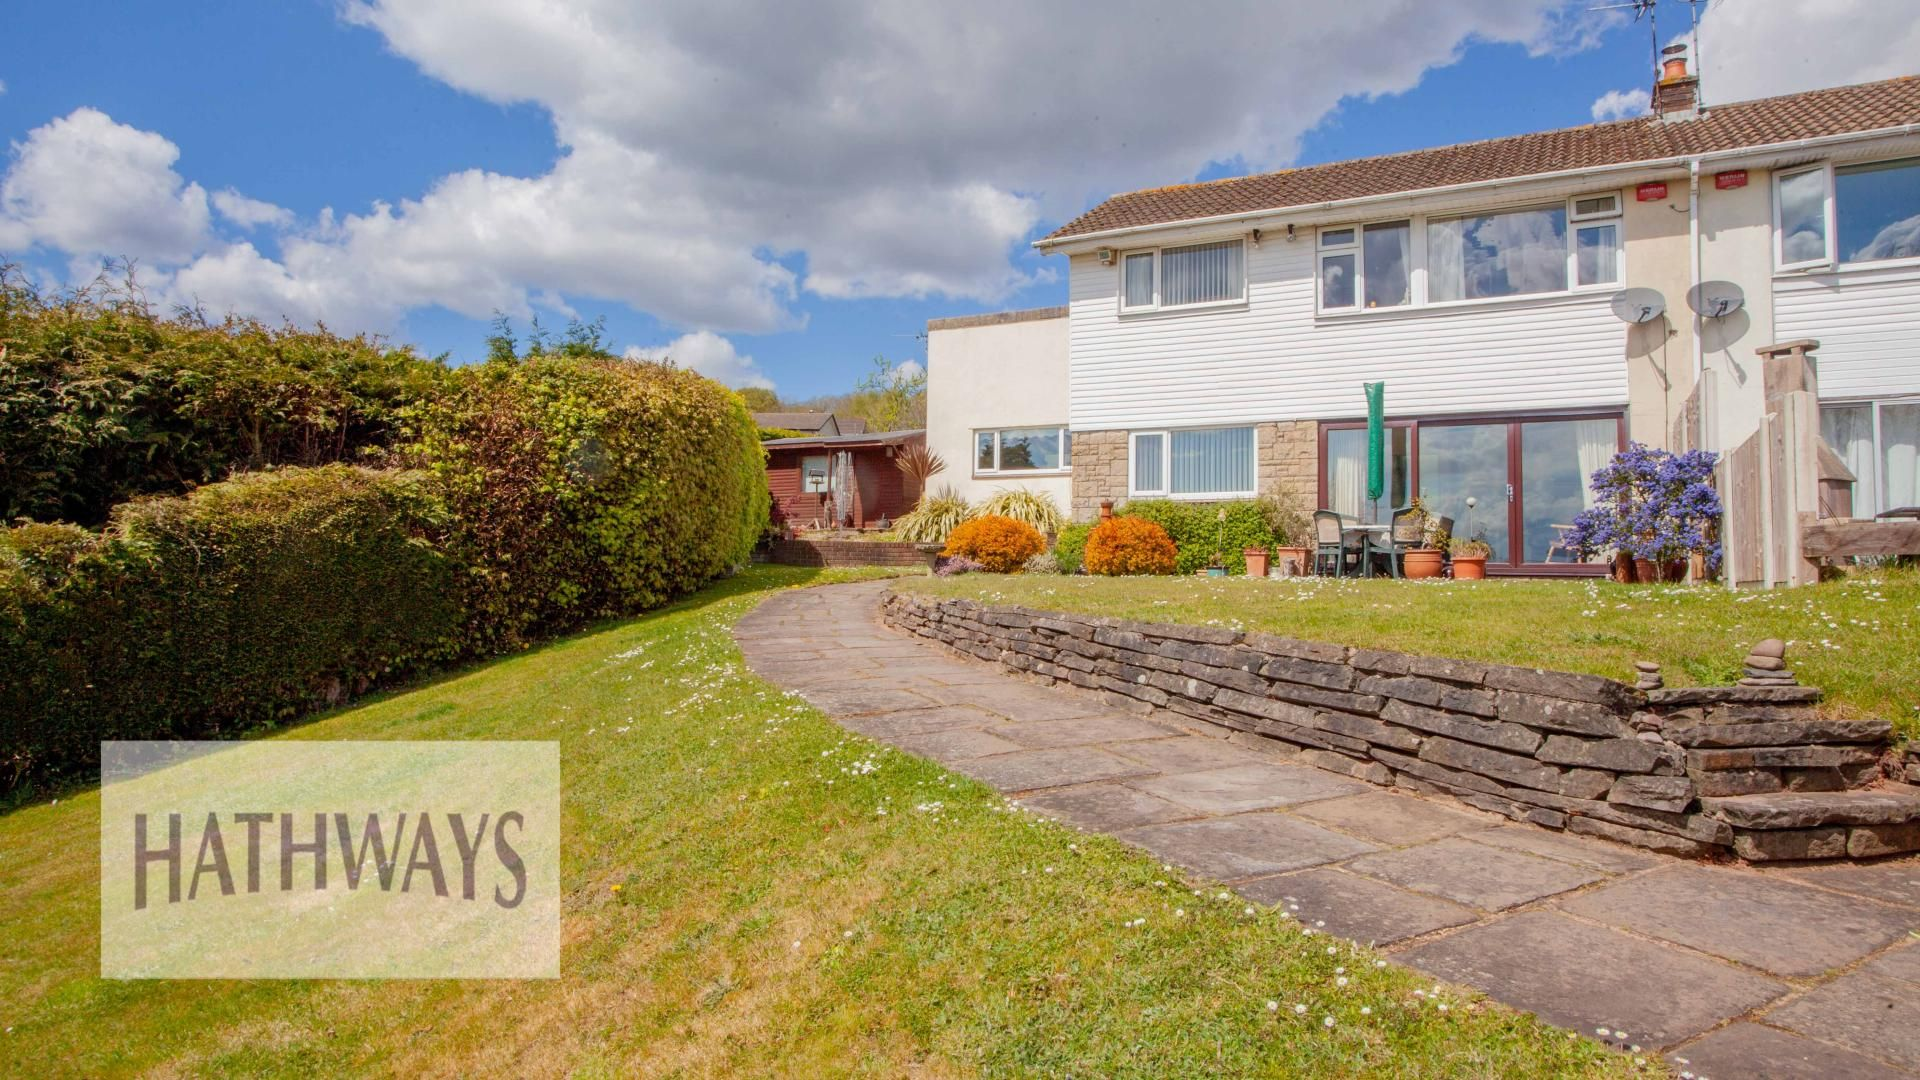 4 bed house for sale in Greenfield, NP18